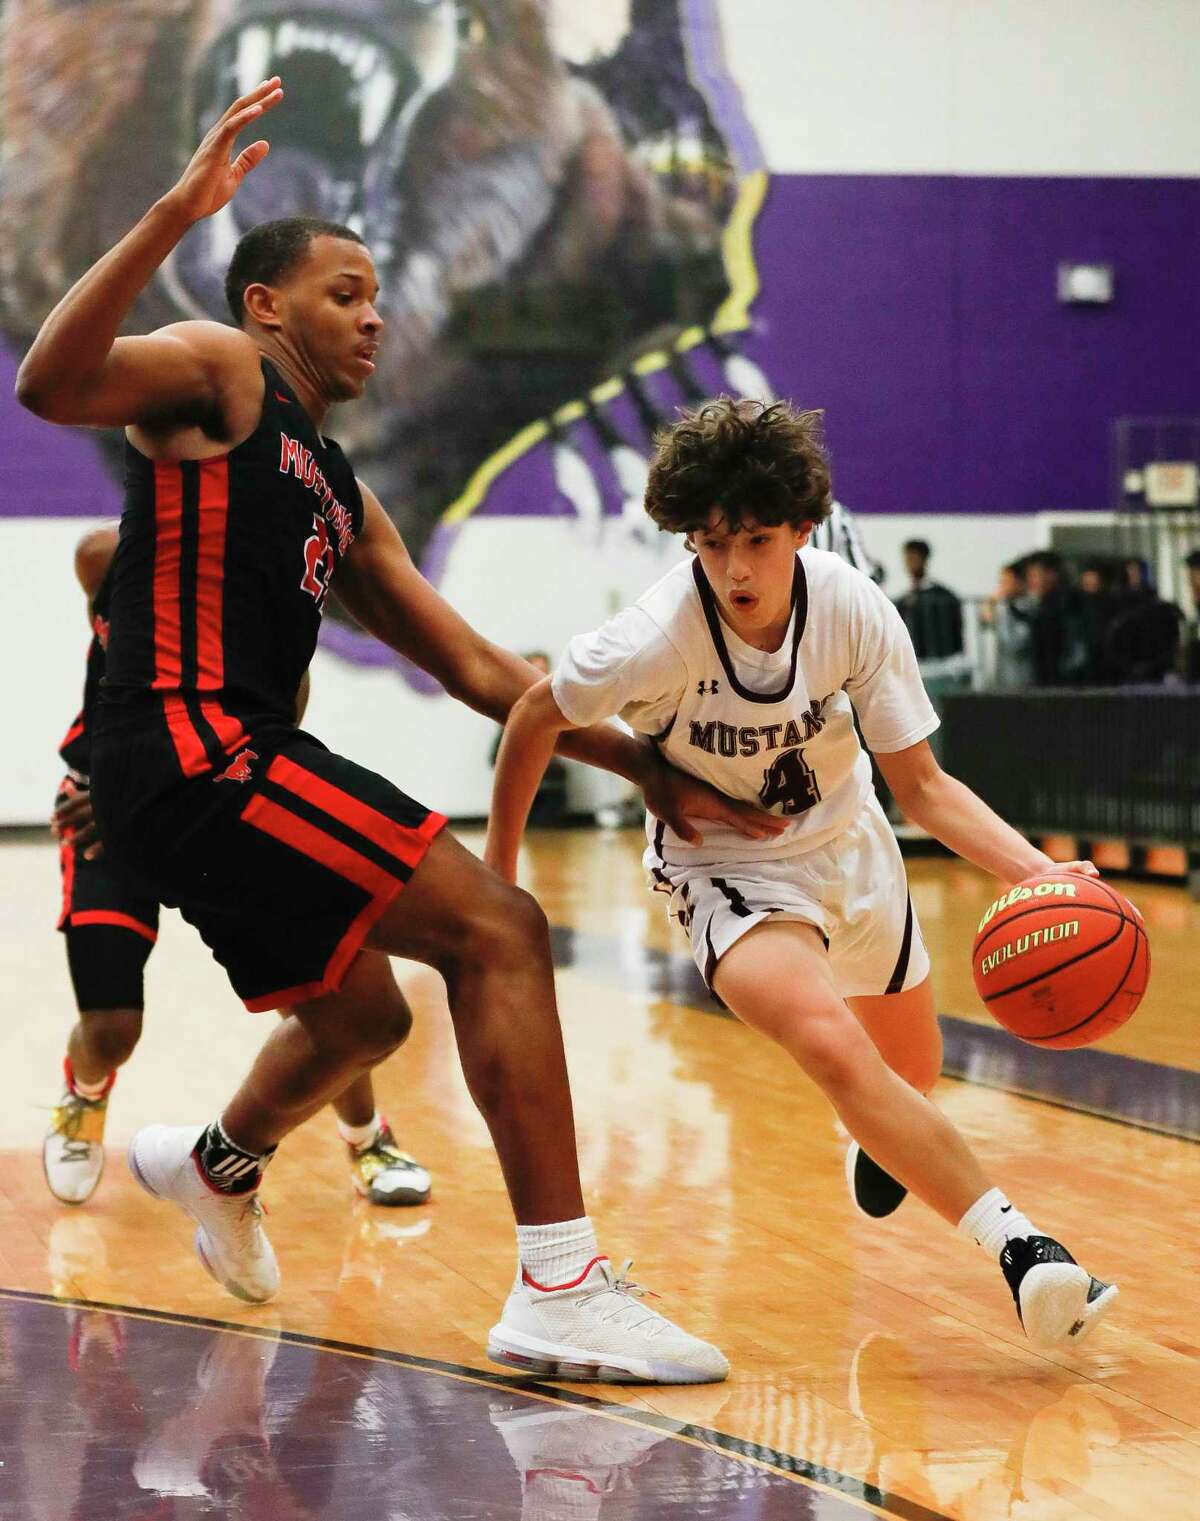 Magnolia West point guard Jacob Homer (4) drives the ball against Westfield forward Willie Williams (23) in the first quarter of a high school basketball game at the MHS Bears Holiday Classic, Thursday, Dec. 12, 2019, in Montgomery.